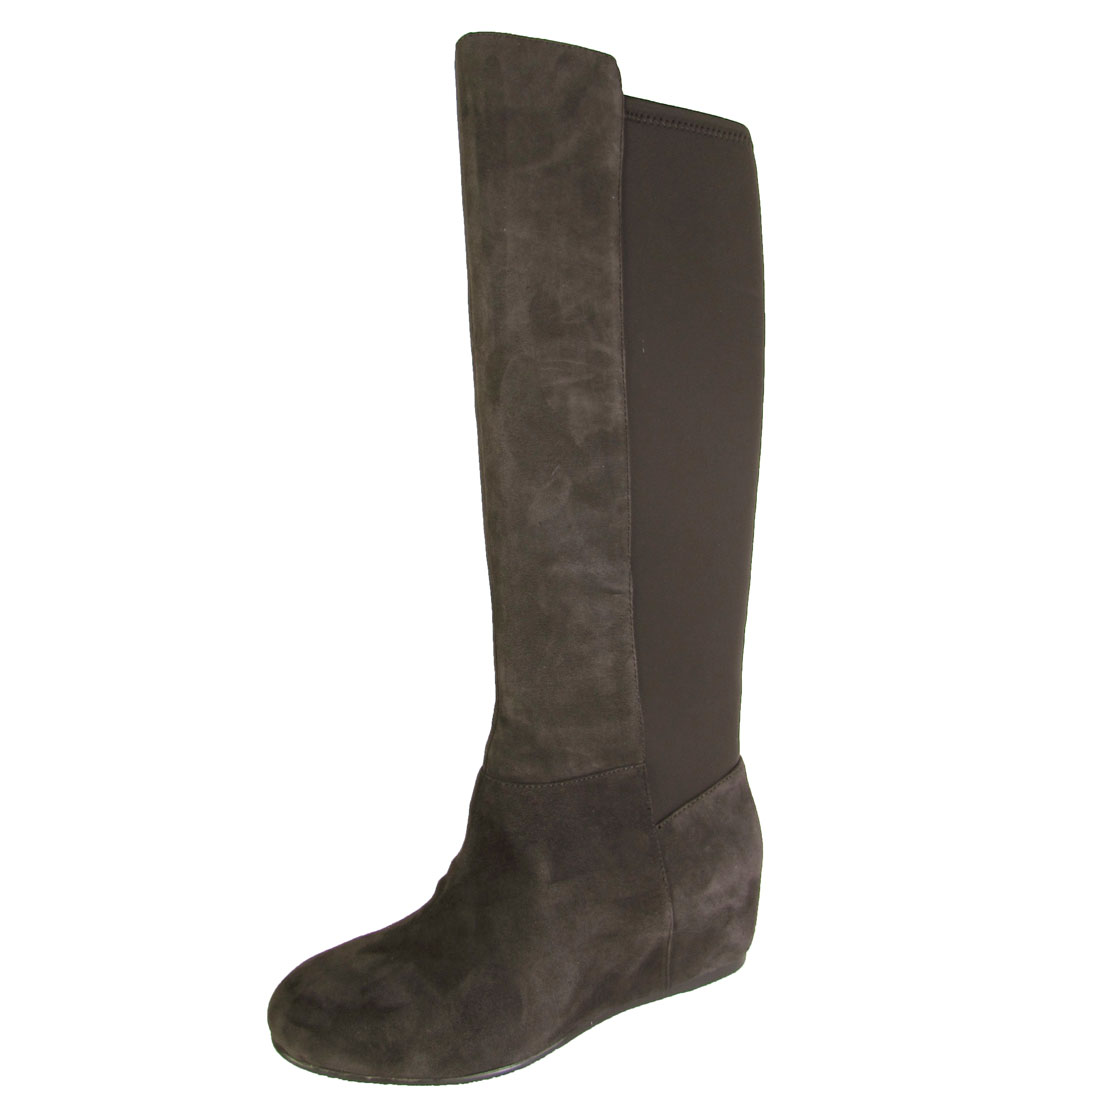 BCBG BCBGeneration Damenschuhe BG-Indie Boot Knee High Wedge Heel Boot BG-Indie Schuhe c1854a